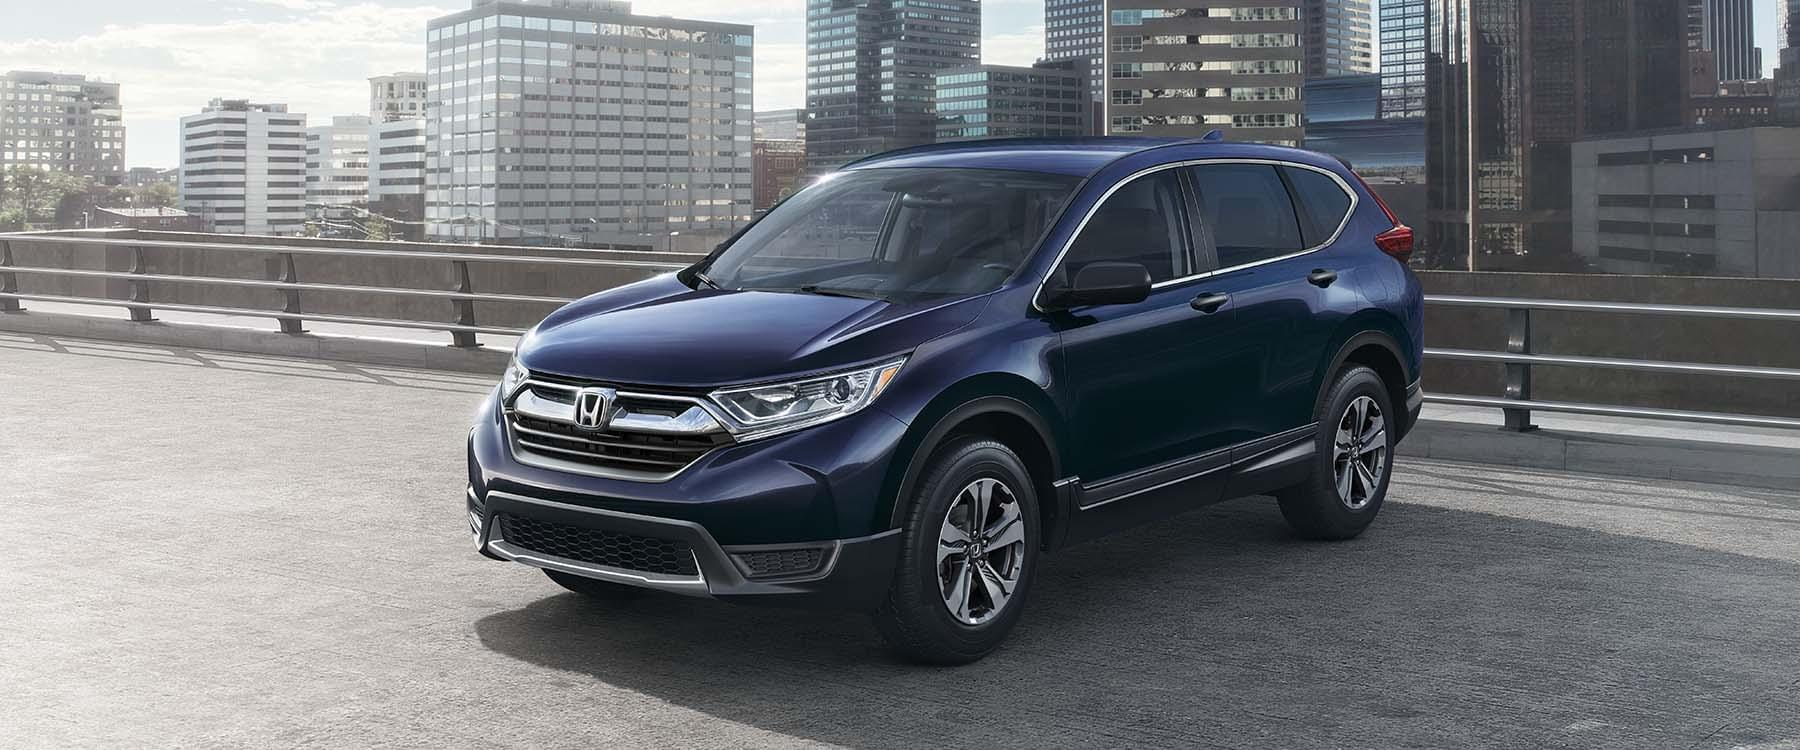 2016 vs 2017 honda cr v the difference for albany drivers for Honda crv competitors